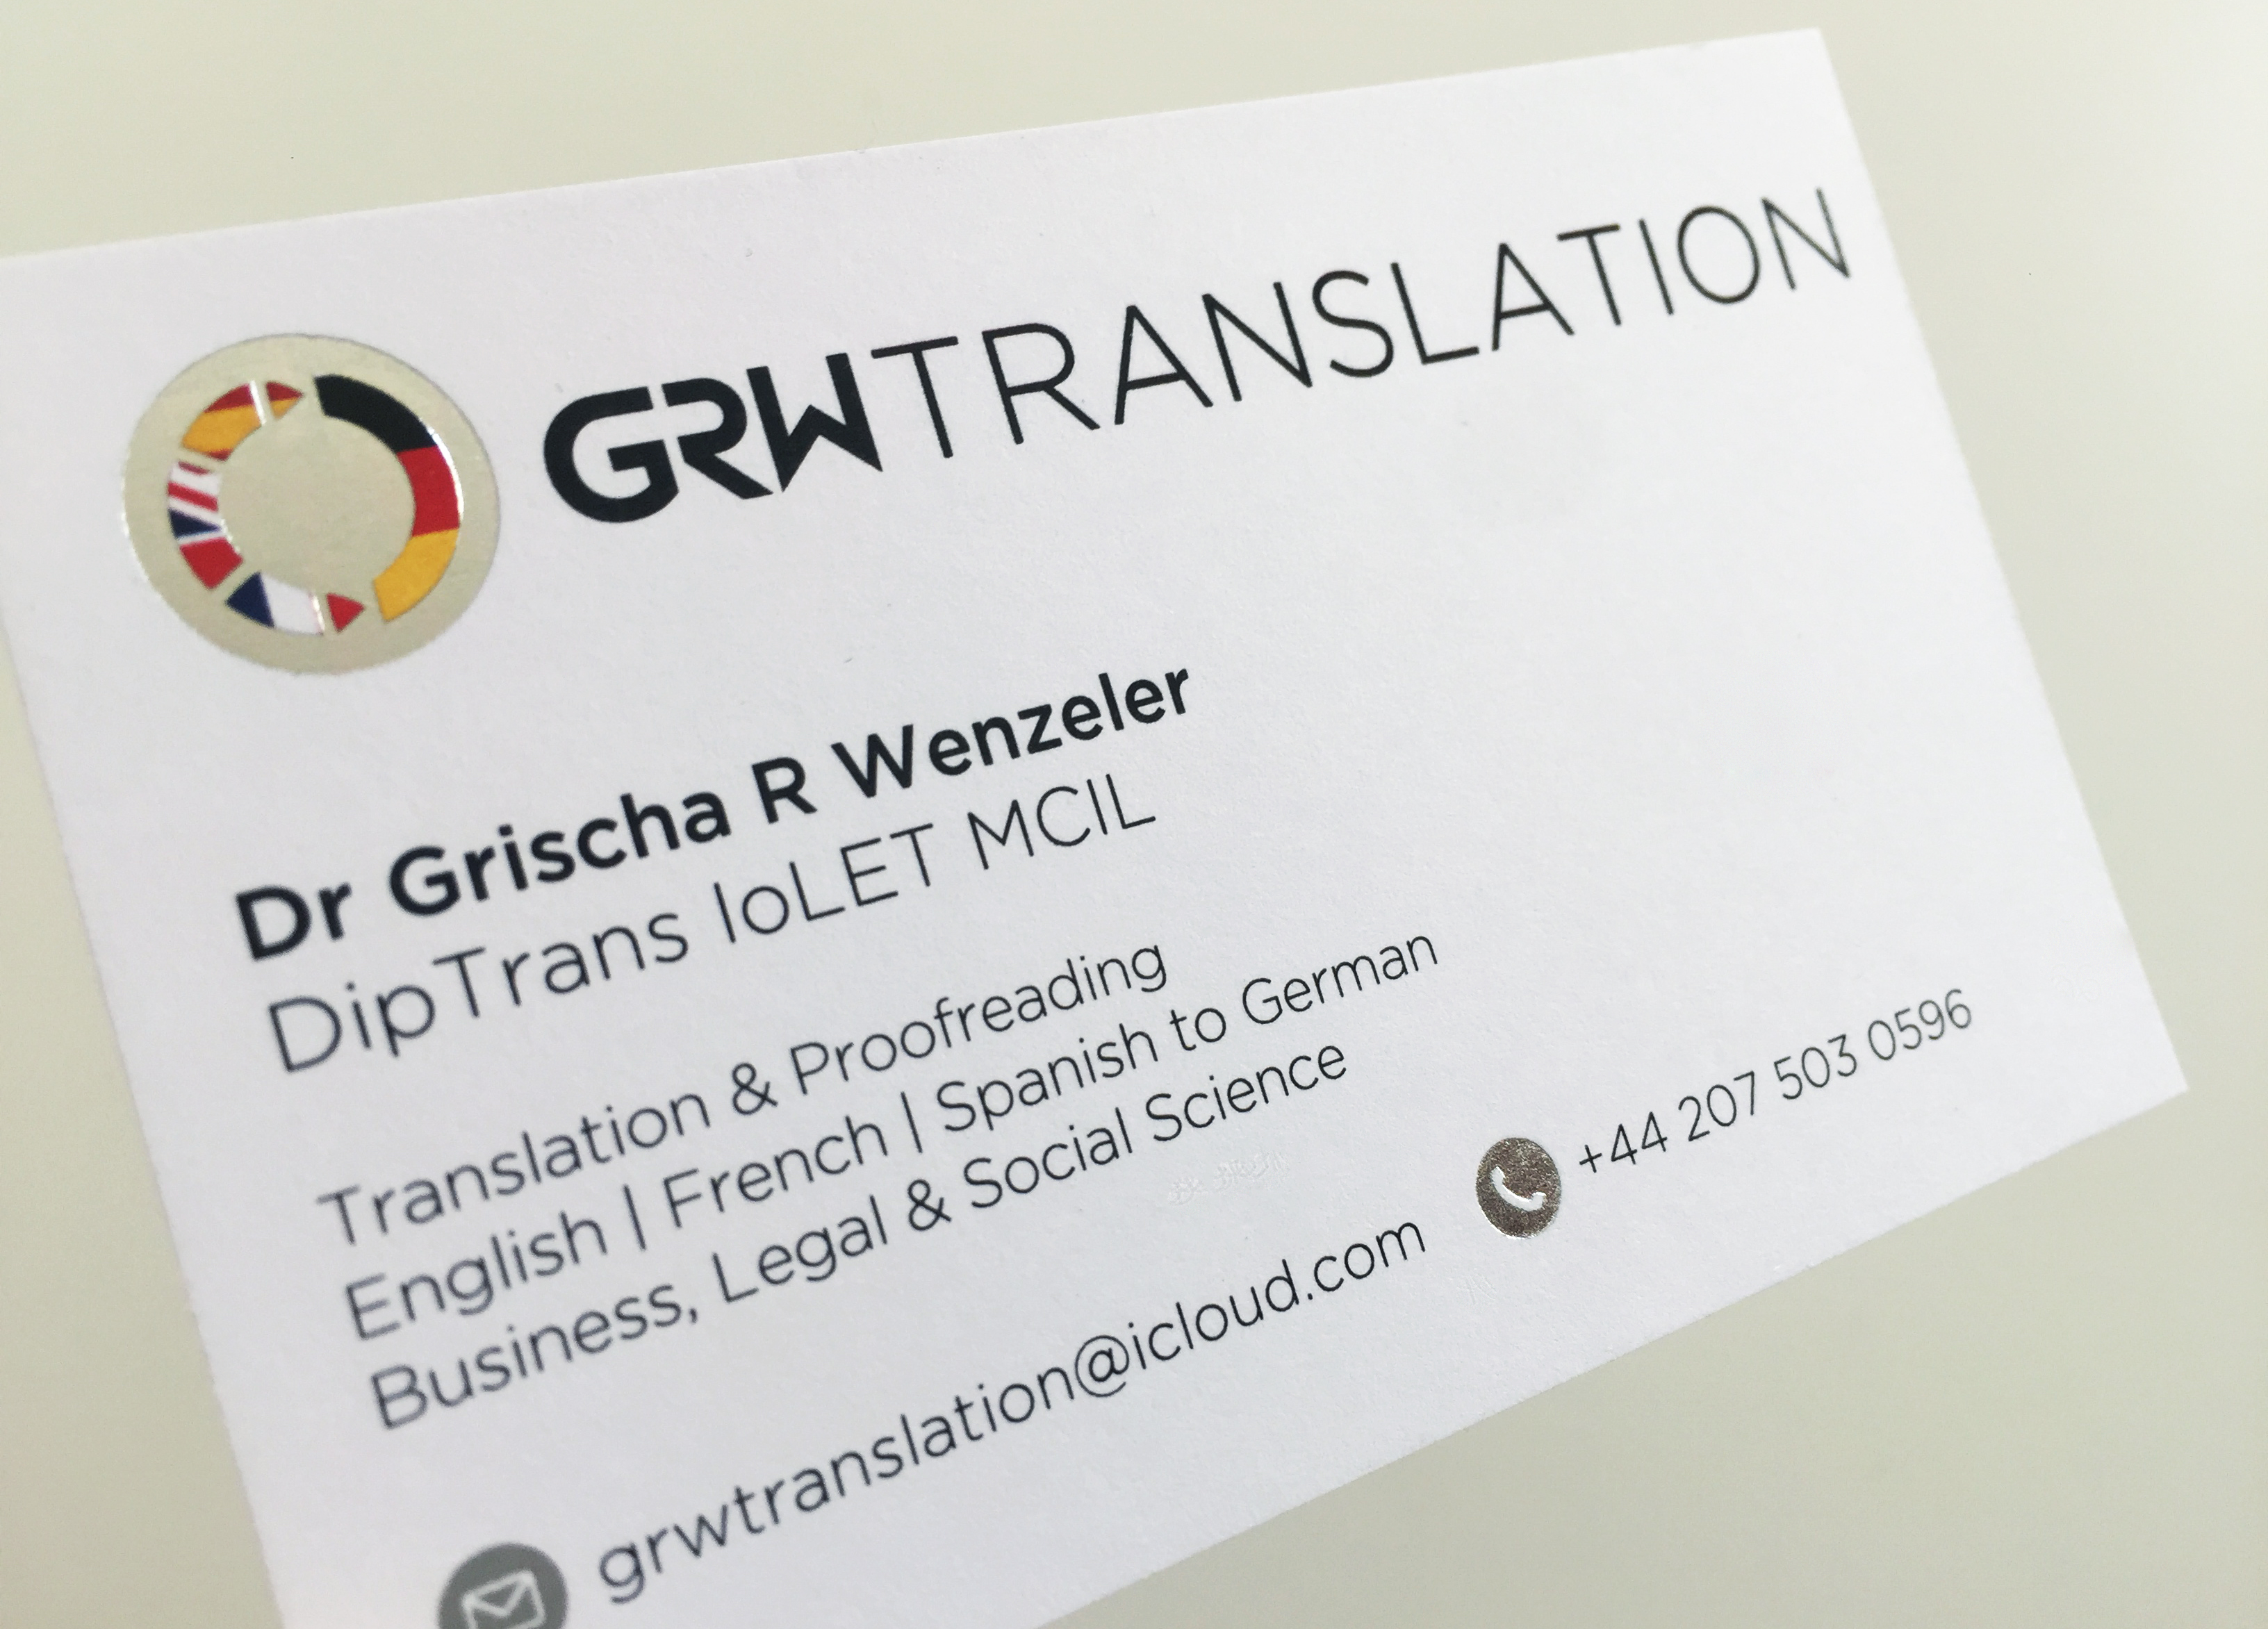 Charming Translator Business Cards Gallery - Business Card Ideas ...